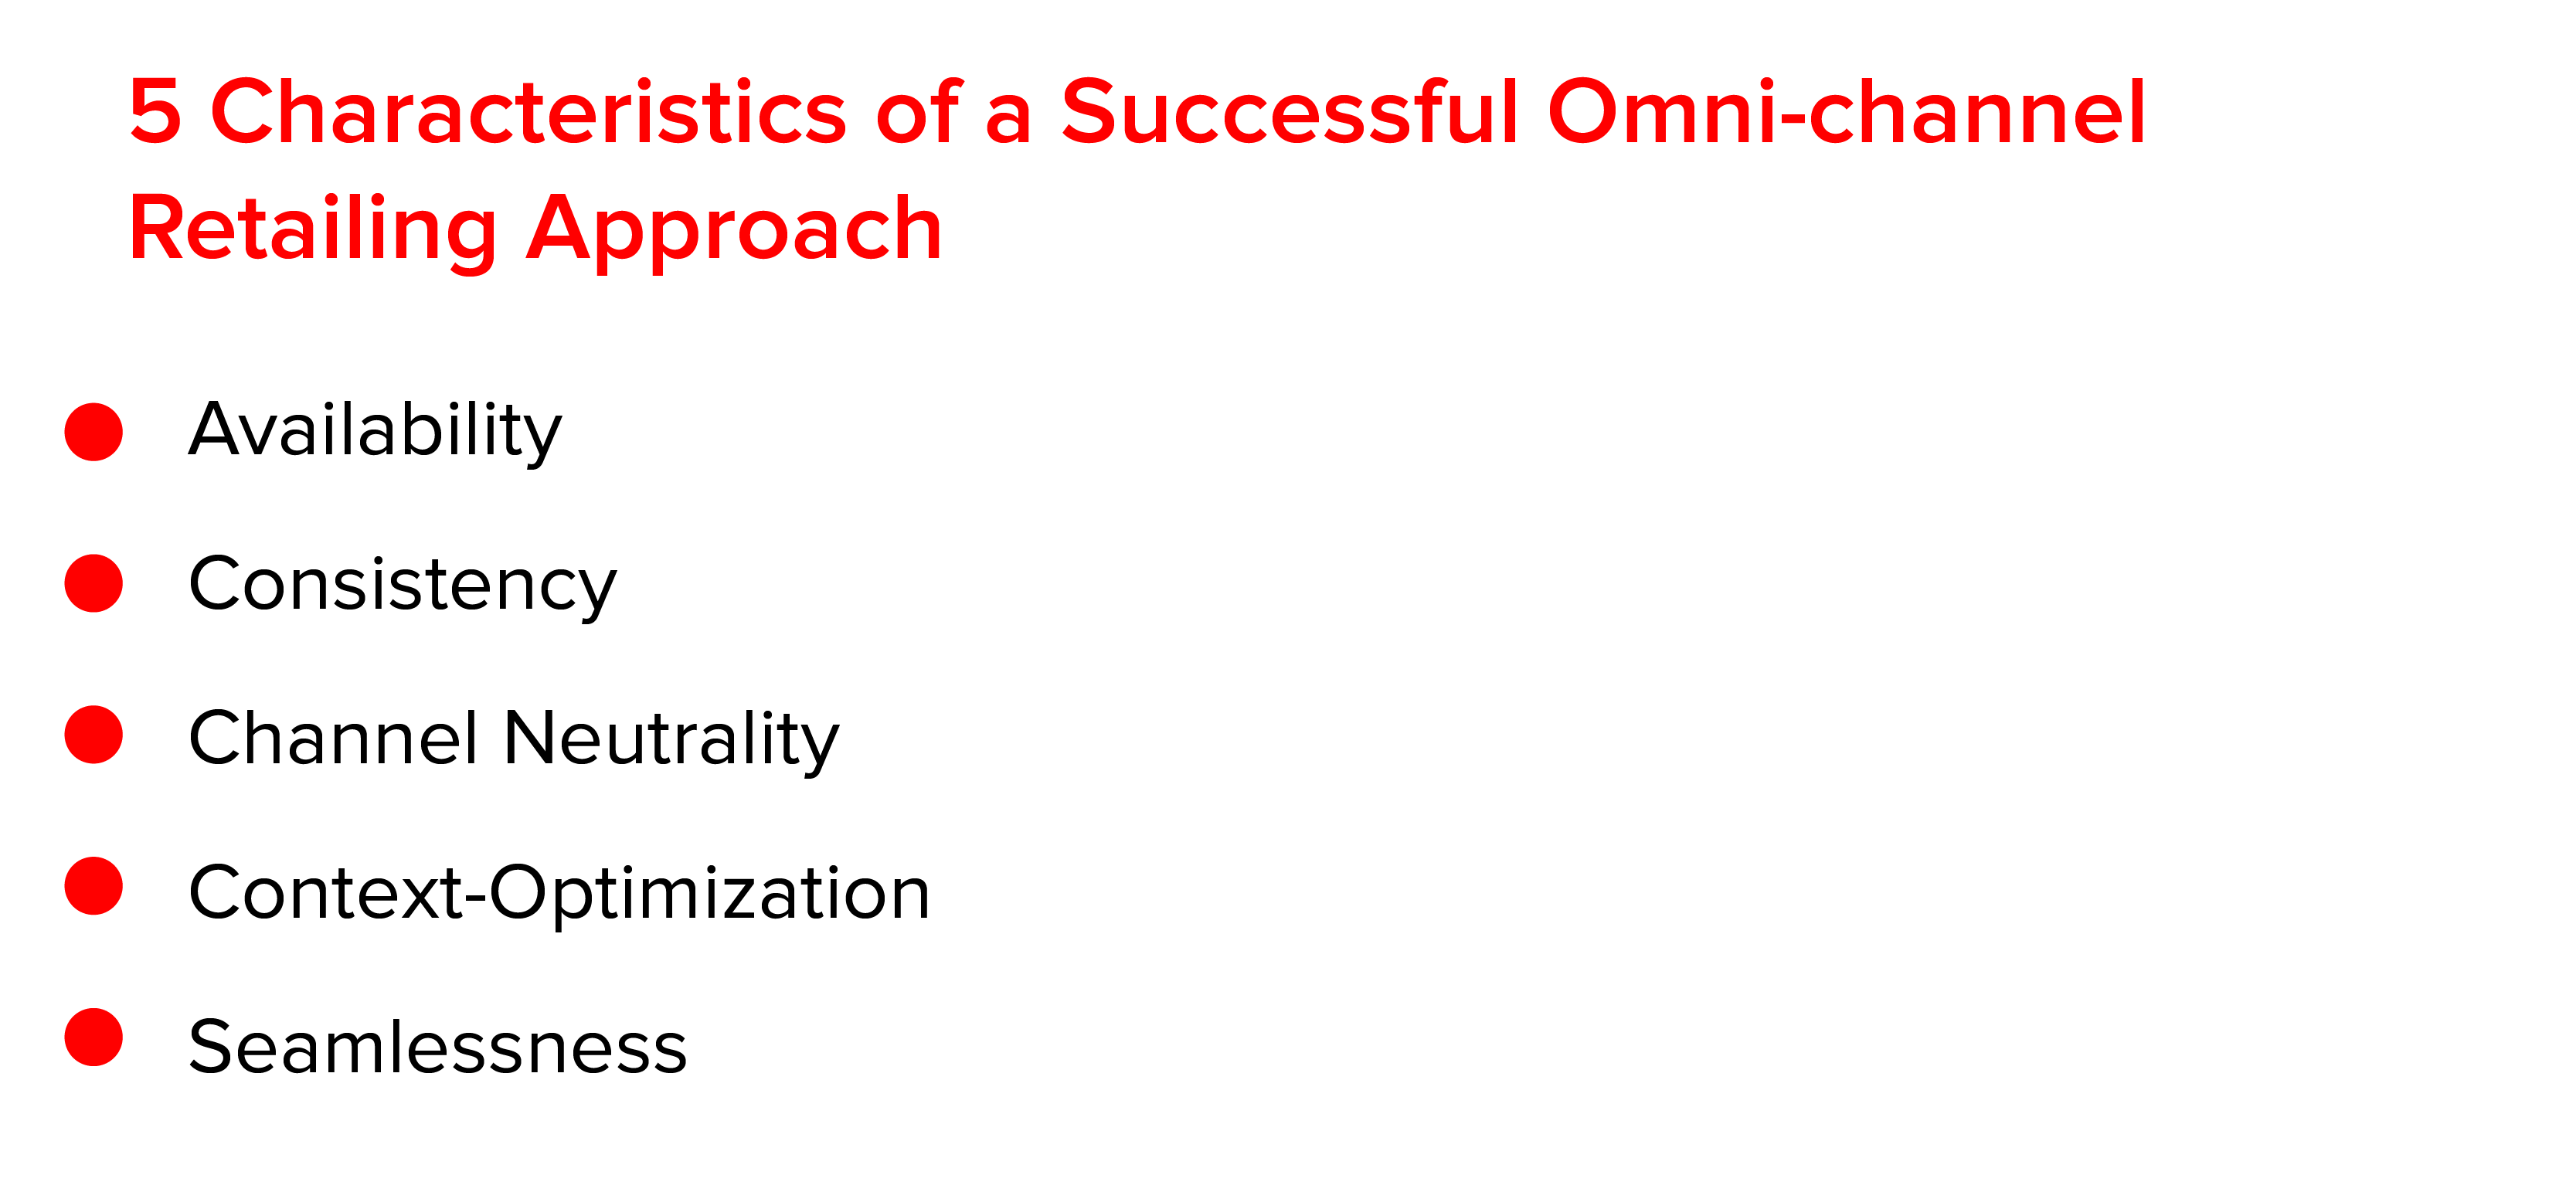 5 Characteristics of a Successful Omni-Channel Retailing Approach